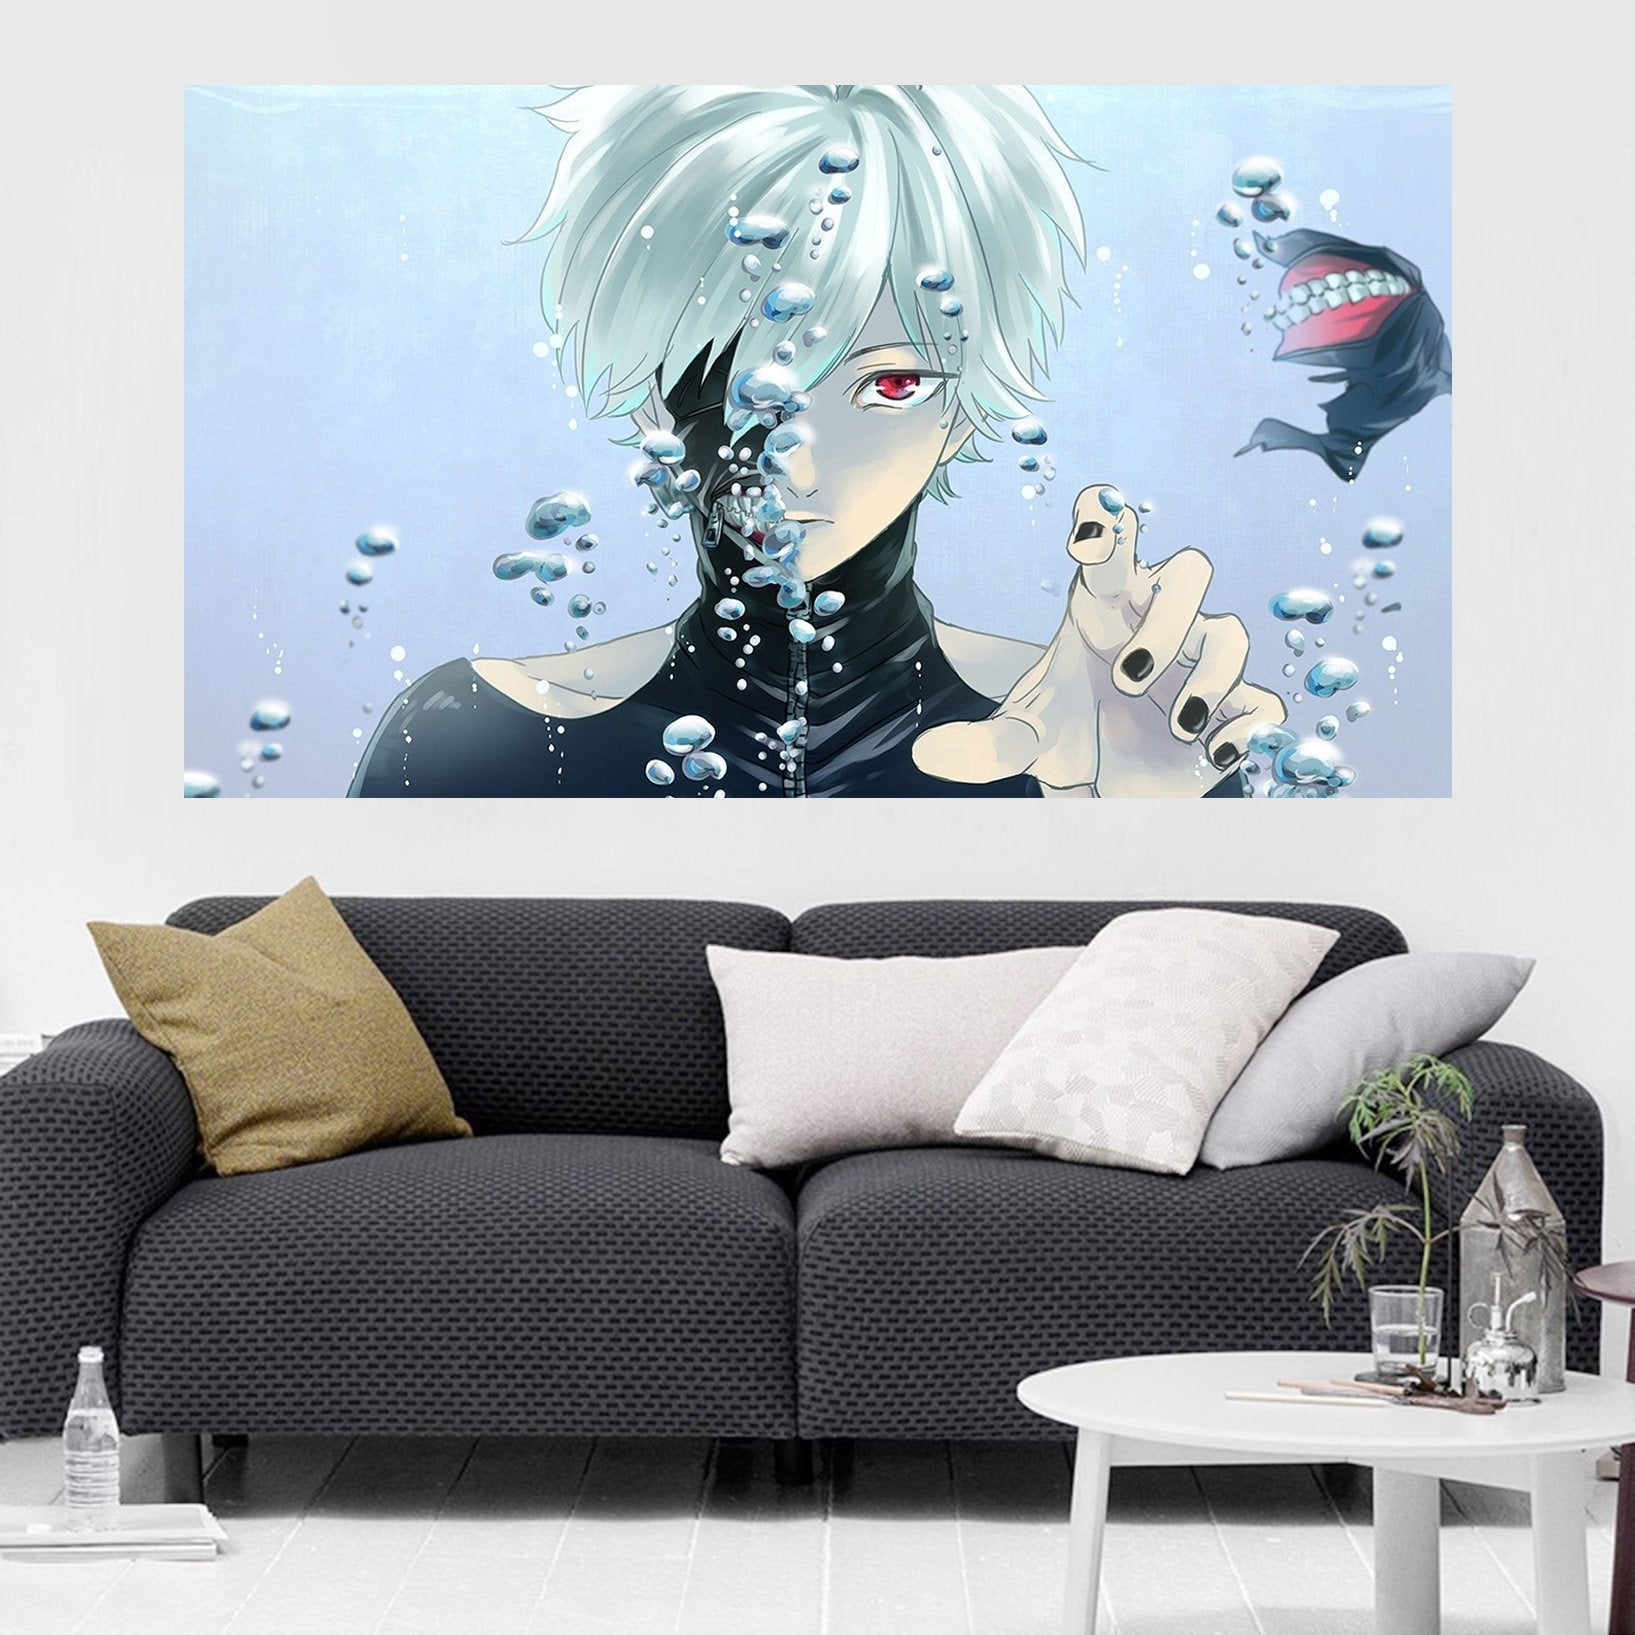 3D Tokyo Ghoul 207 Anime Wall Stickers Wallpaper AJ Wallpaper 2